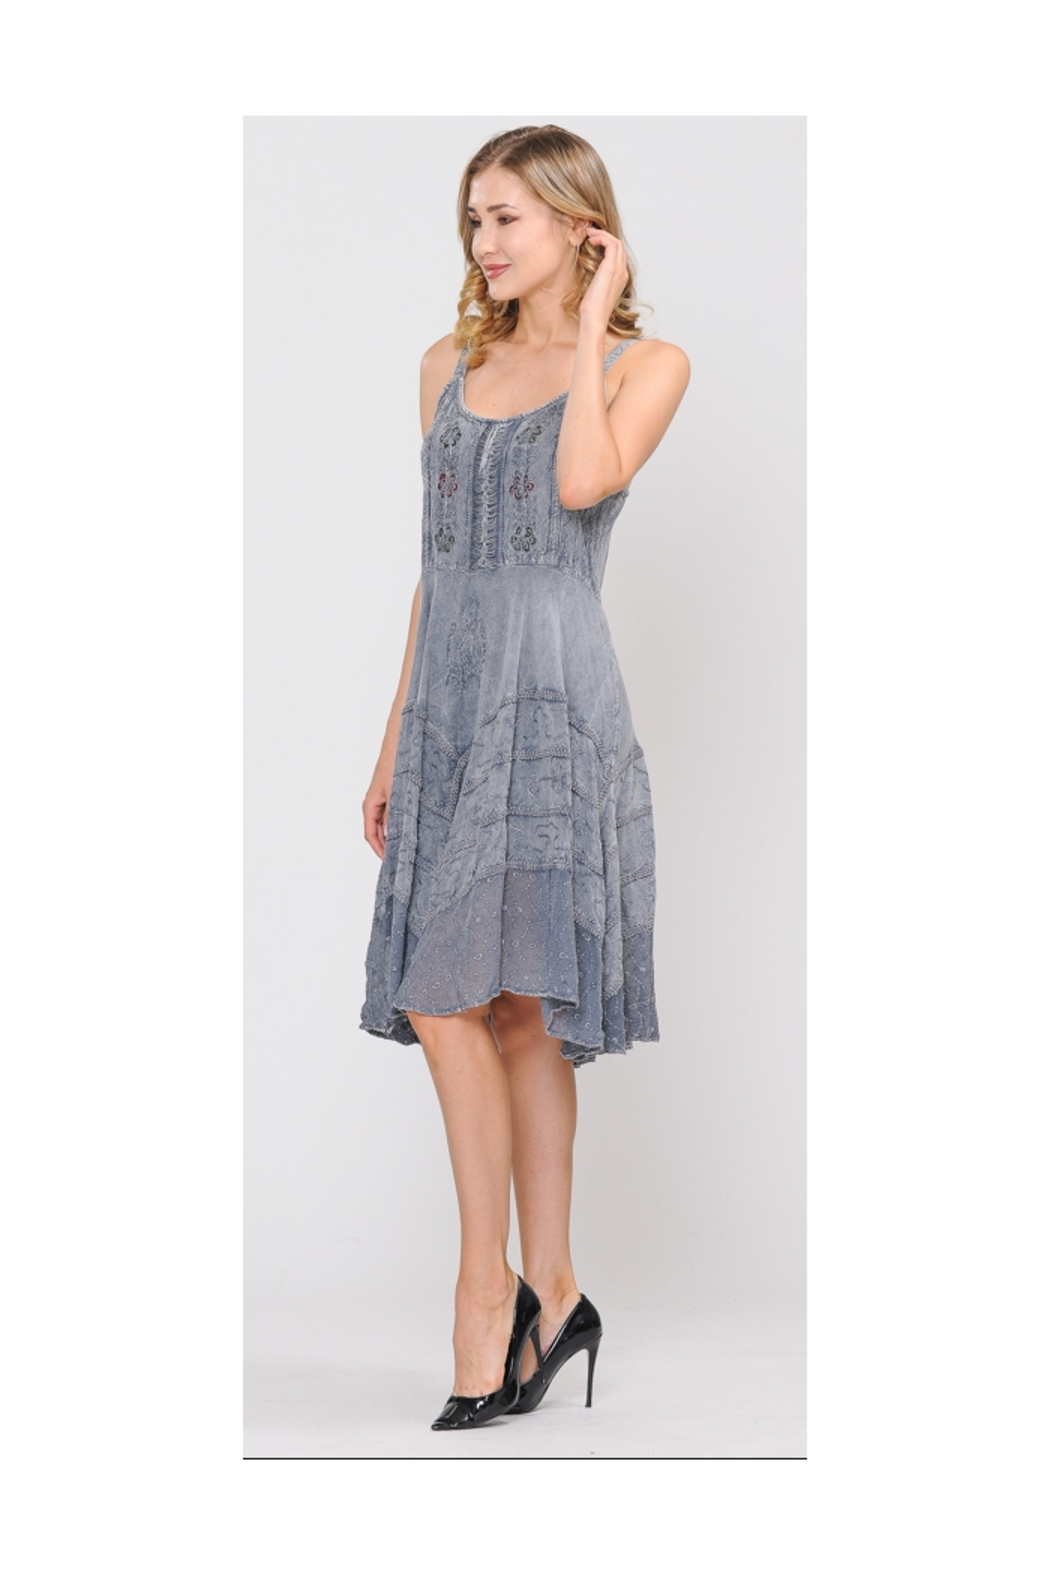 Apparel Love Sand Wash Grey Lace Front Dress - Front Full Image